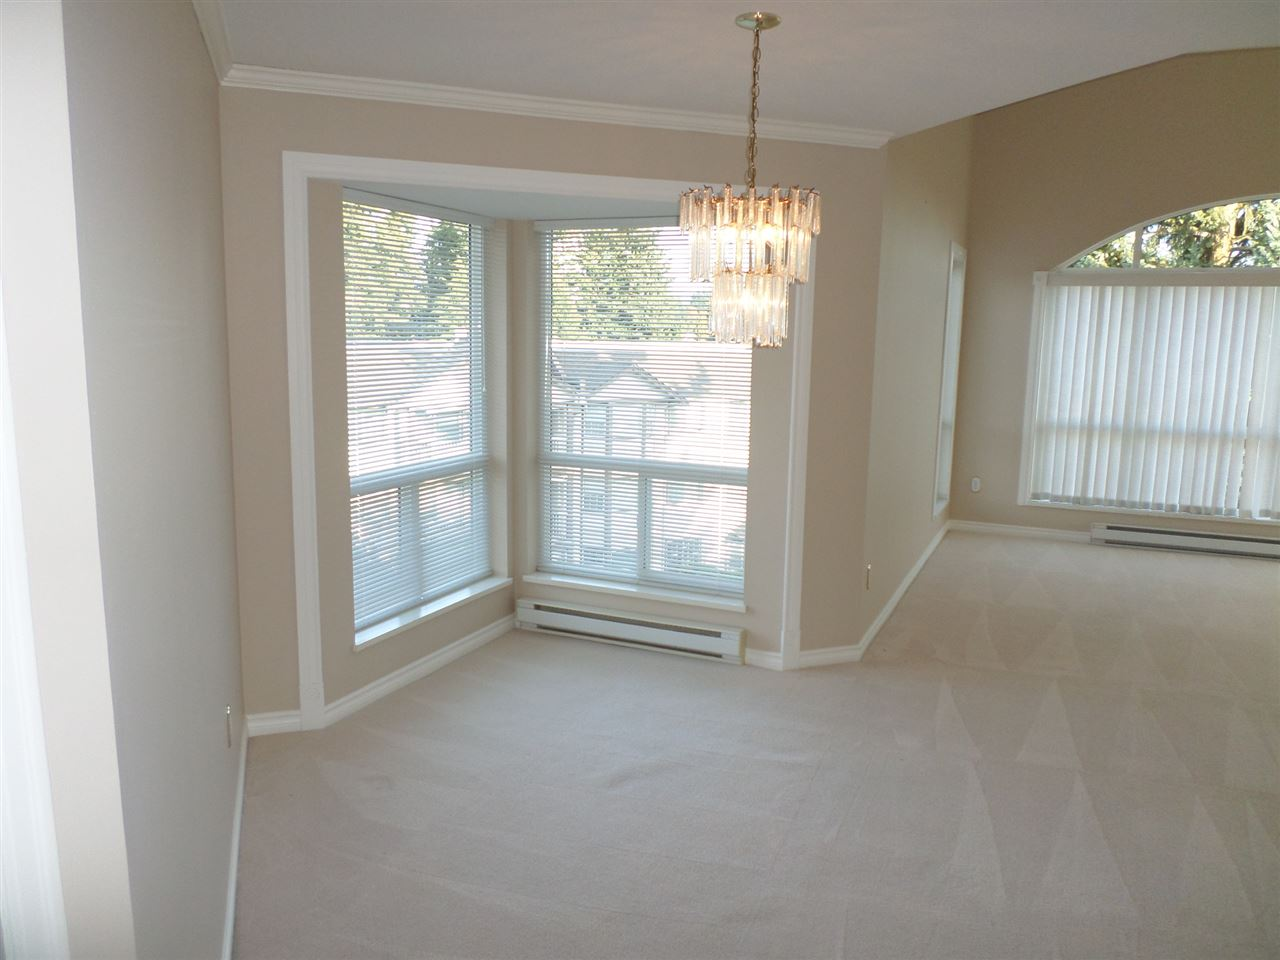 "Photo 3: 405 32120 MT WADDINGTON Avenue in Abbotsford: Abbotsford West Condo for sale in ""The Laurelwood"" : MLS(r) # R2001419"